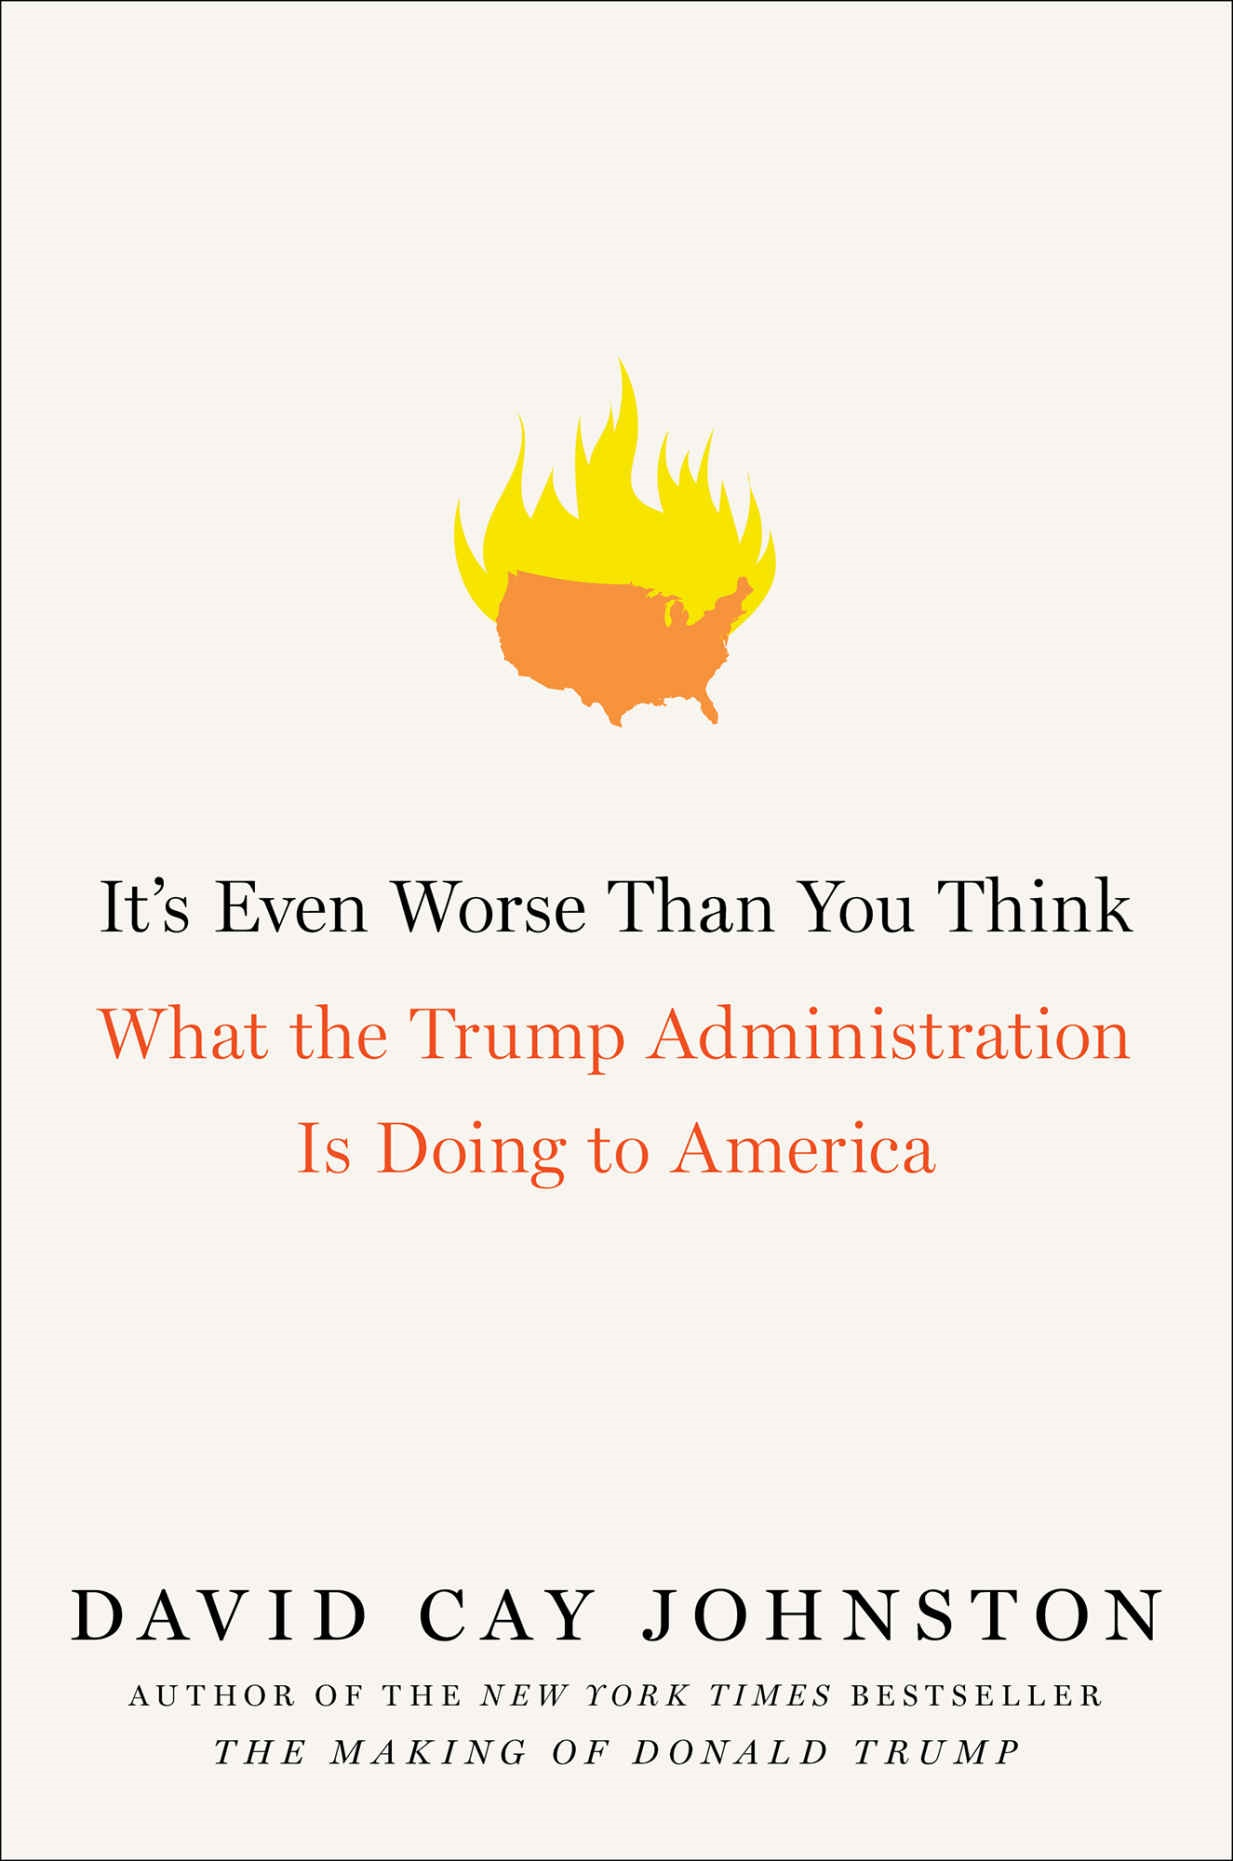 It's Even Worse Than You Think - David Cay Johnston [kindle] [mobi]